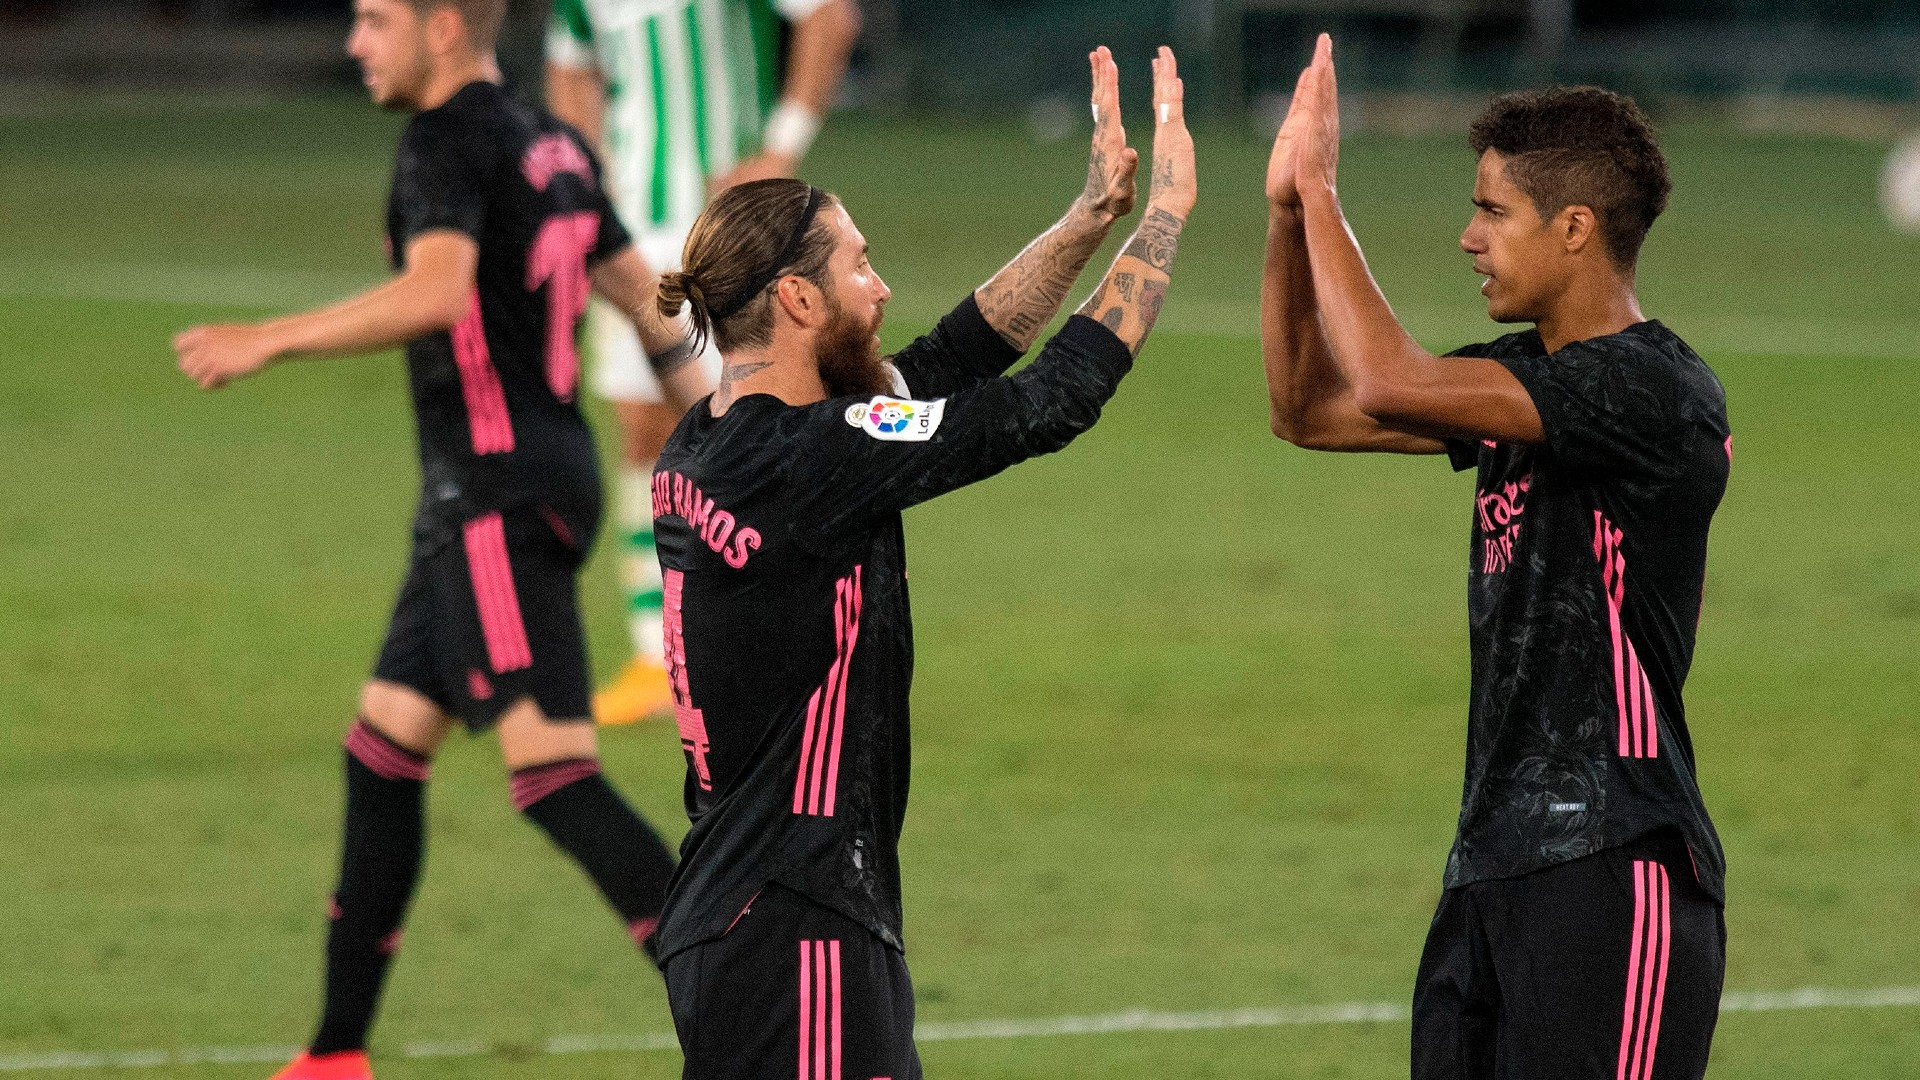 'A new chapter begins' - Varane bids farewell to Real Madrid as Ramos predicts 'exciting' Man Utd future